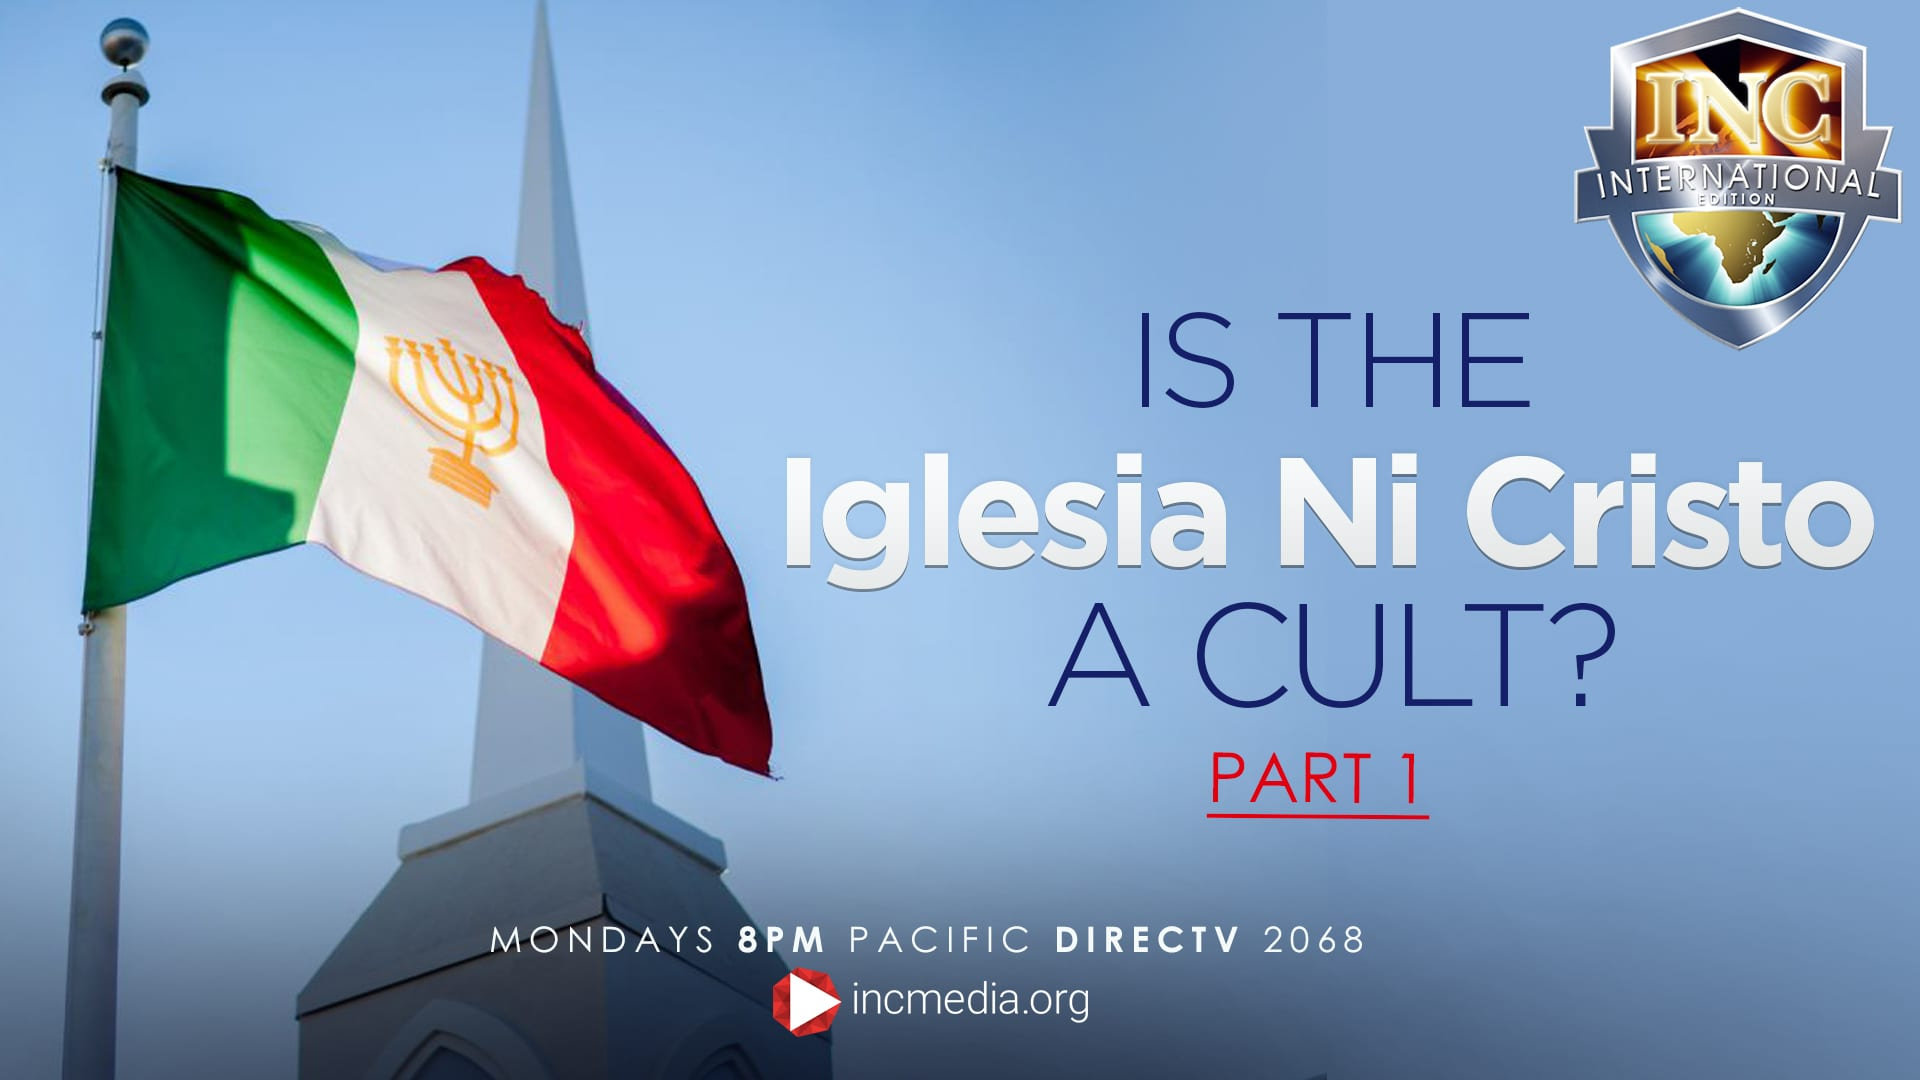 Is the Iglesia Ni Cristo a Cult? Part 1